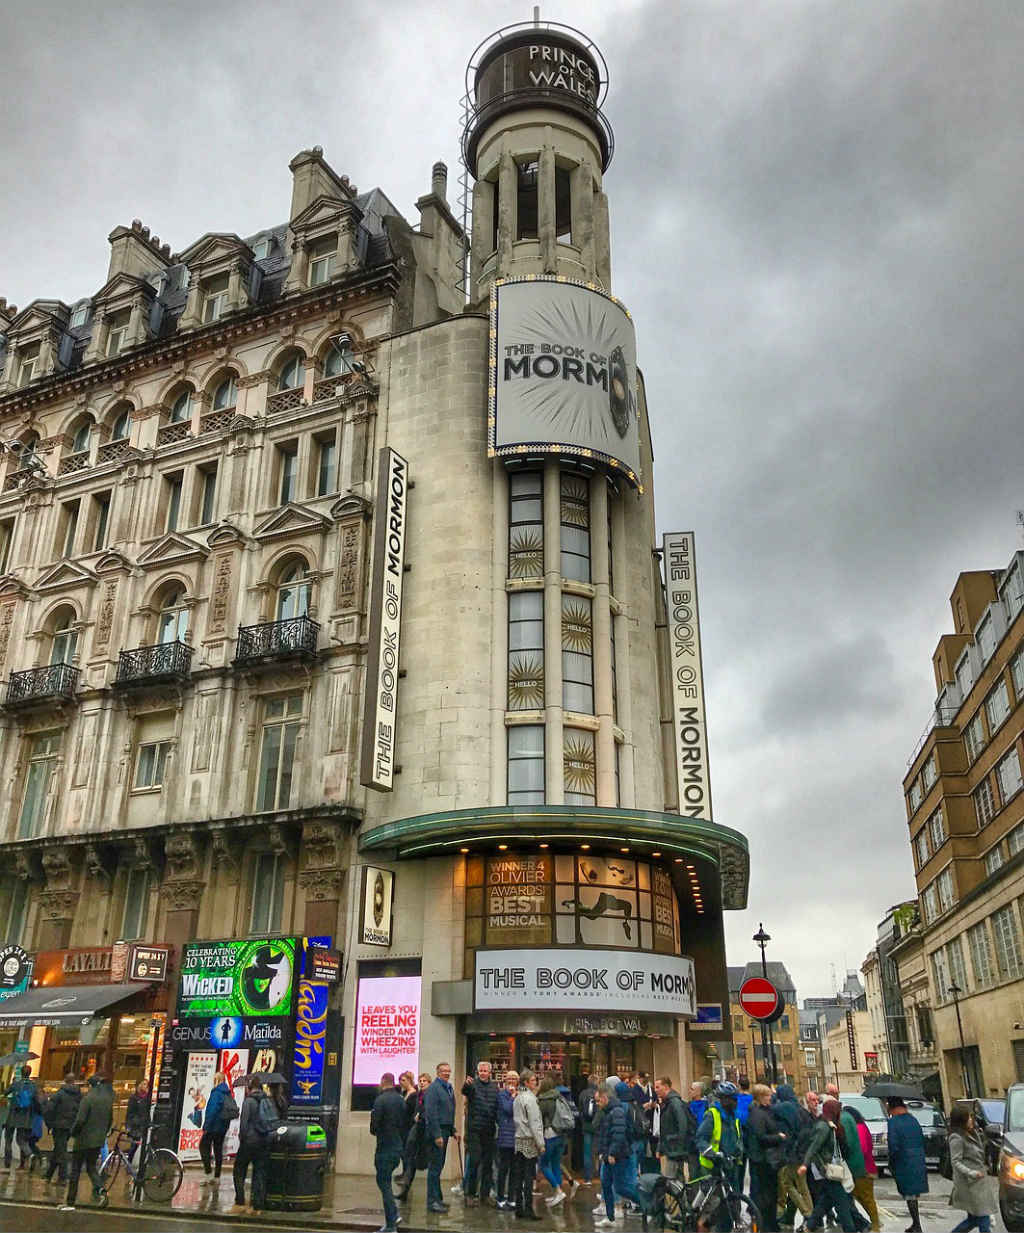 Theatre in London-things to do-See London like a local-Magic of London-Part Two-Miss F Mixer